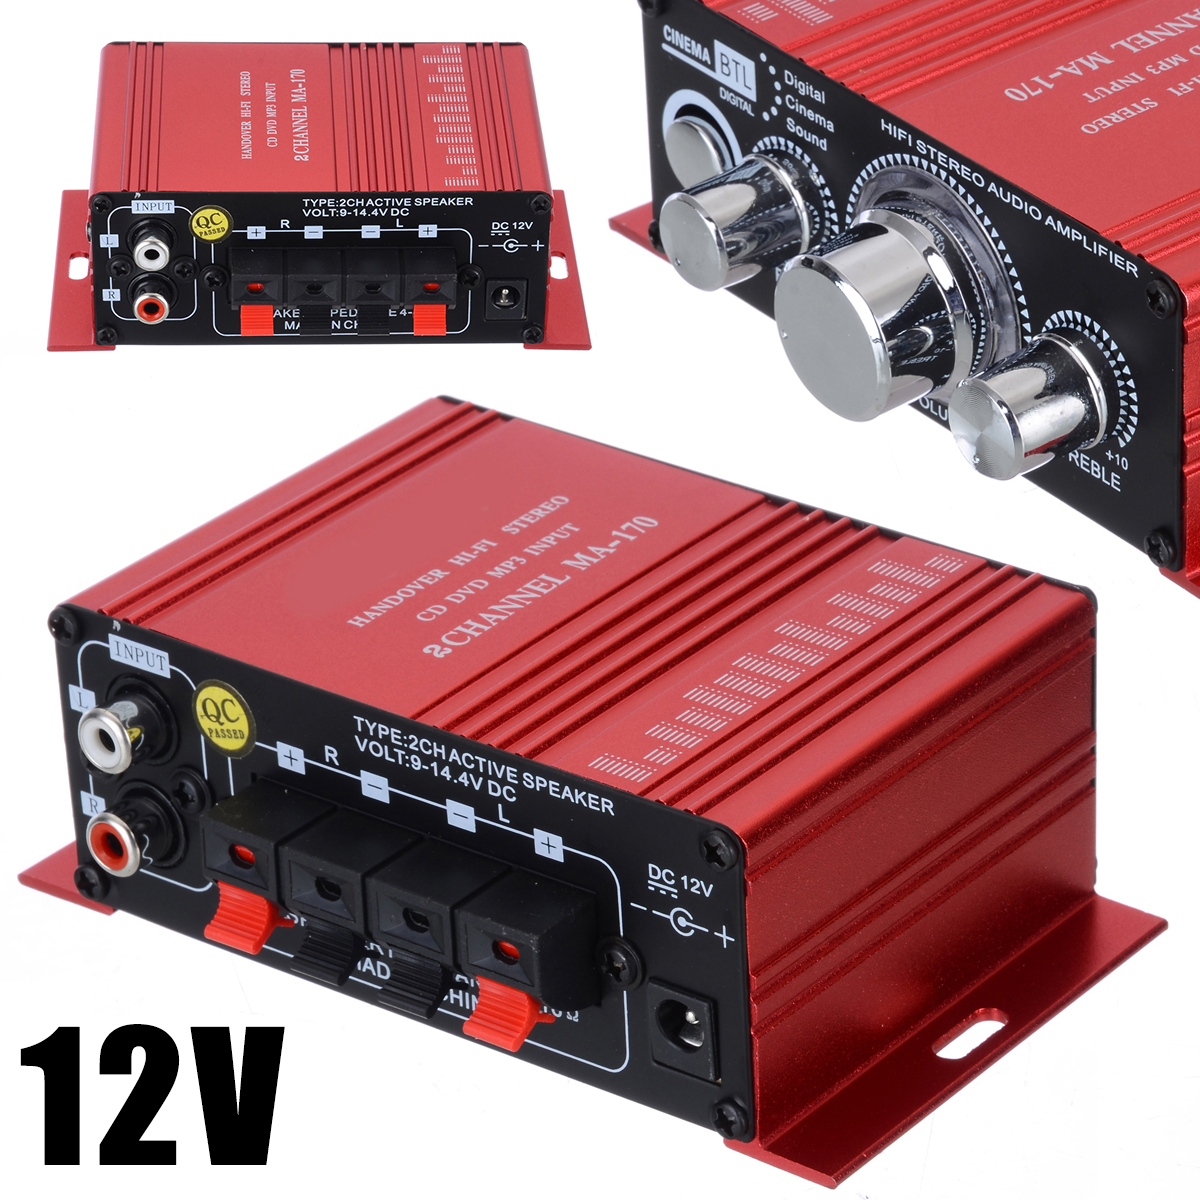 20Hz To 20KHz New Red Stereo HiFi Amplifier Aluminium MA 170 2CH AMP For Computer Desktop Speaker in Headphone Amplifier from Consumer Electronics